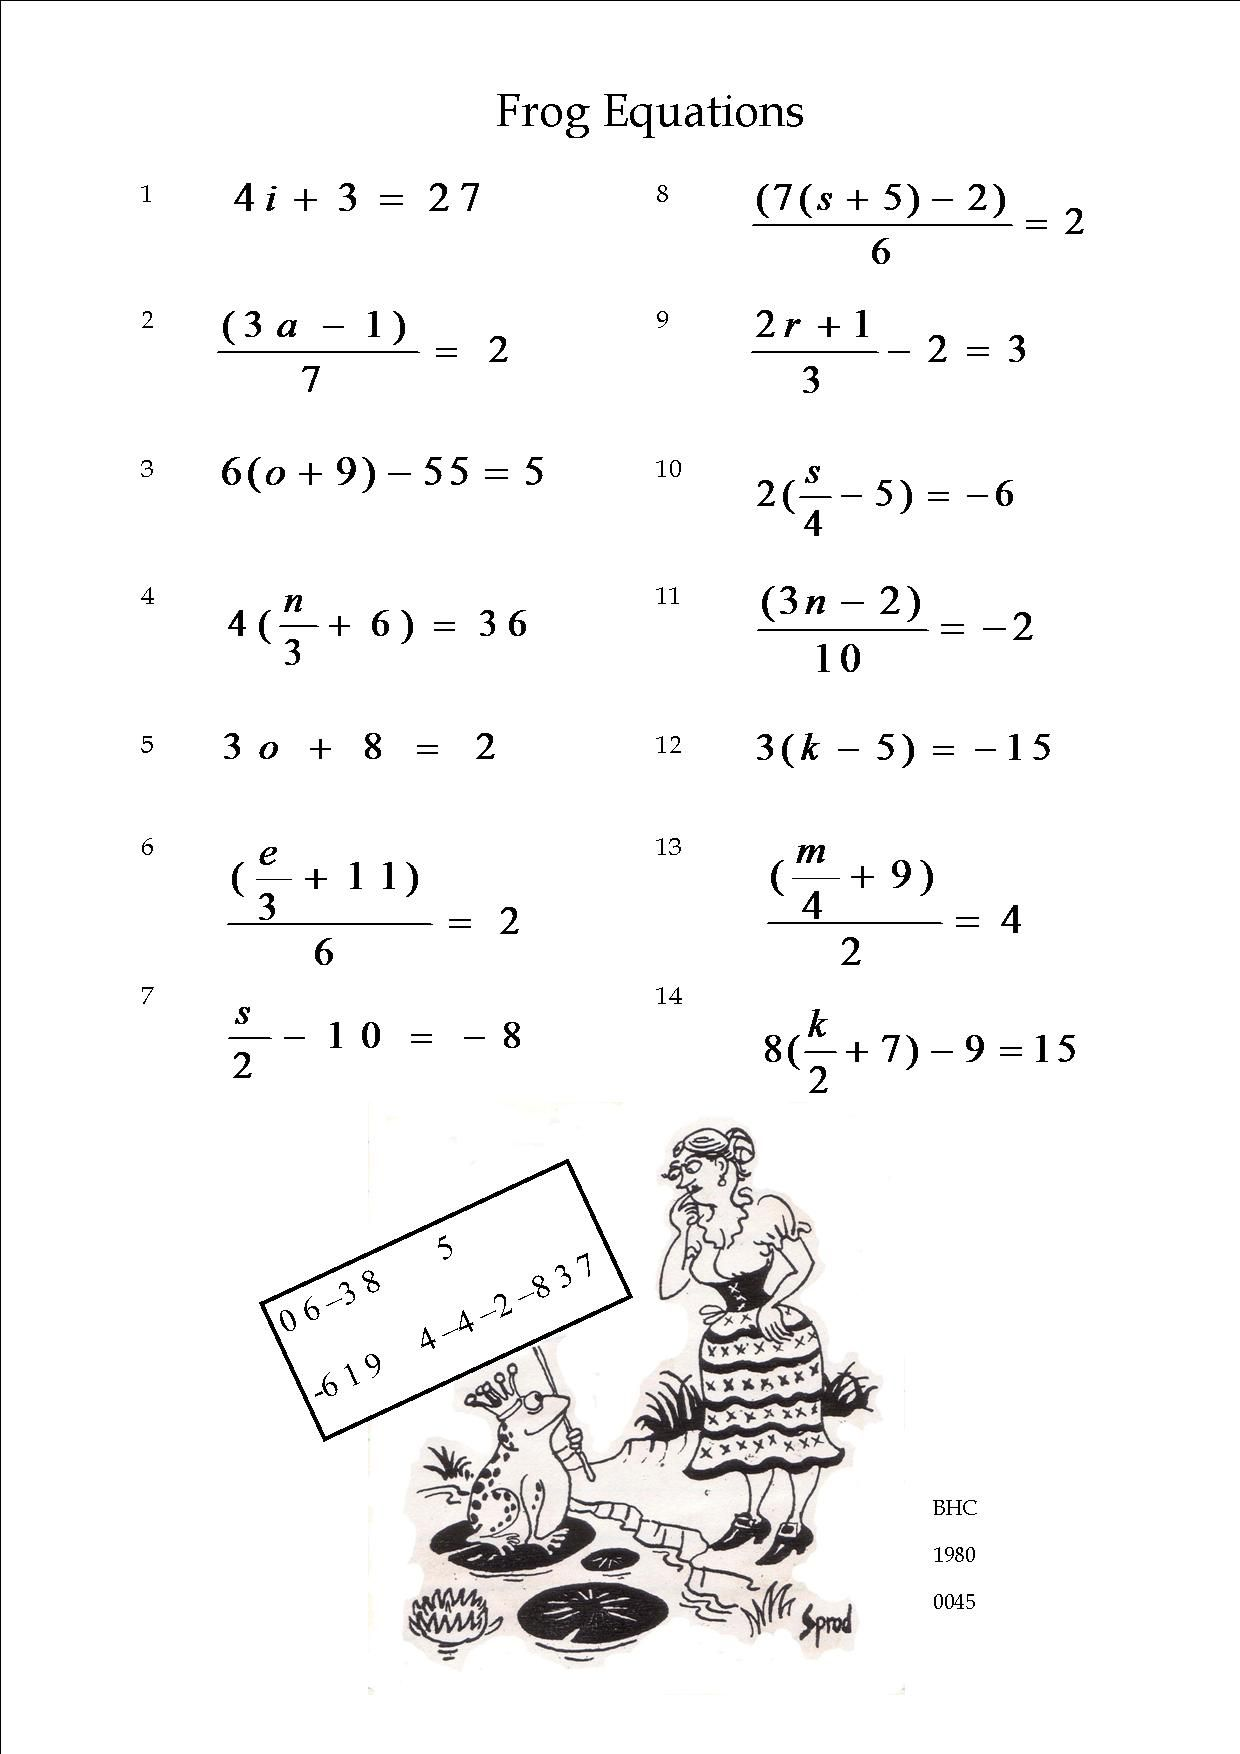 A Collection Of Equations Which May Be Solved Using Backtracking